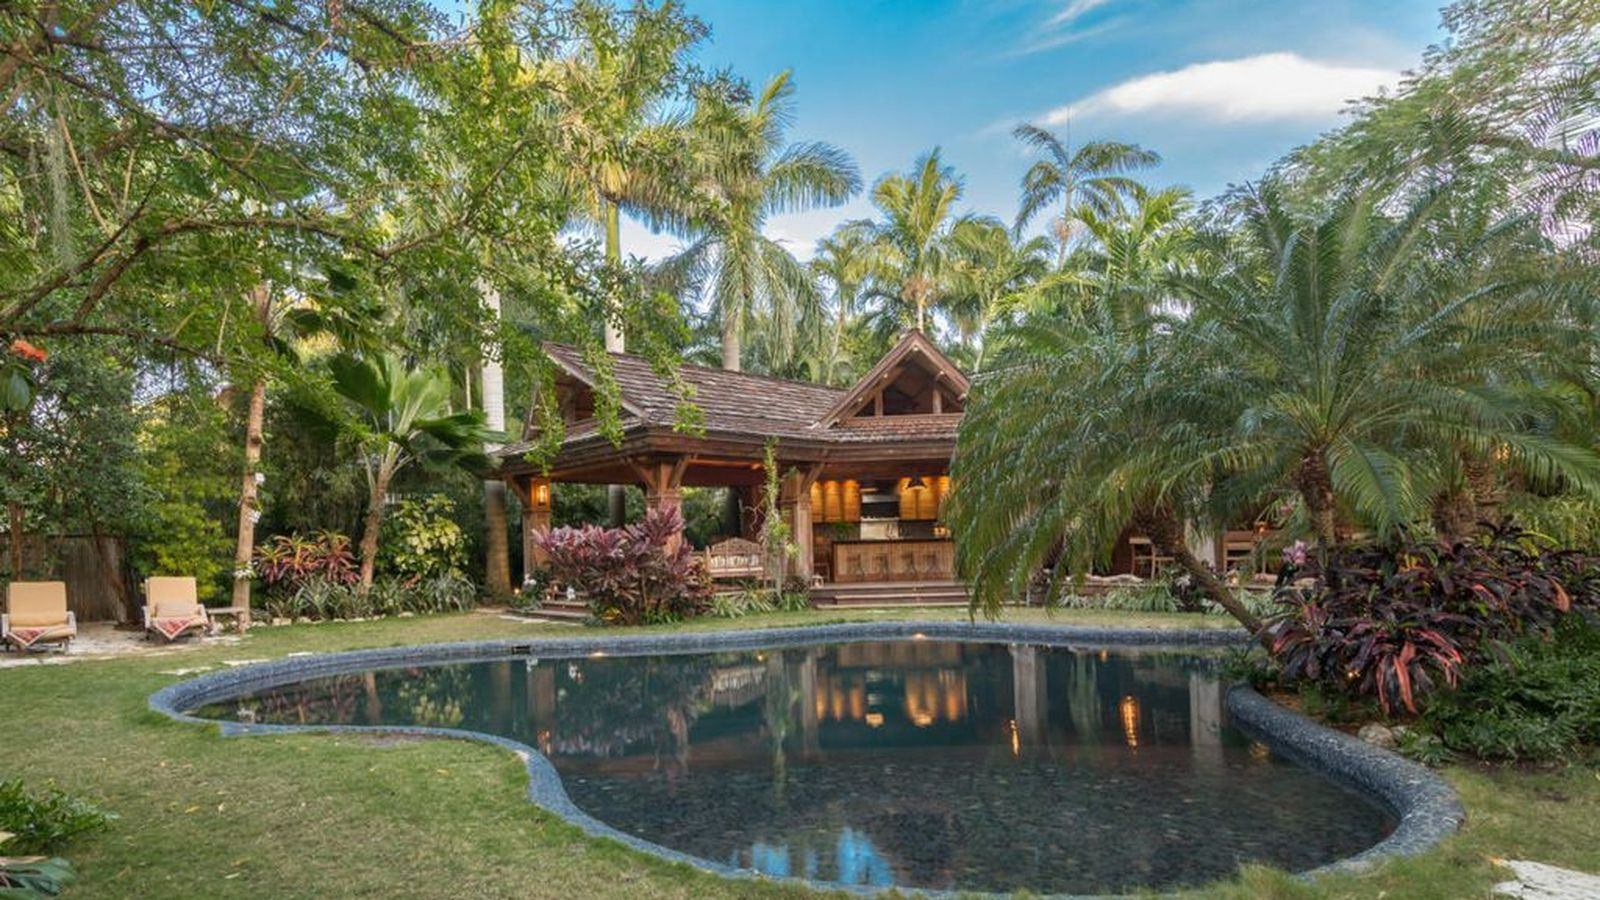 Ultimate Key West Home 3 Bedroom With Guest House 6M